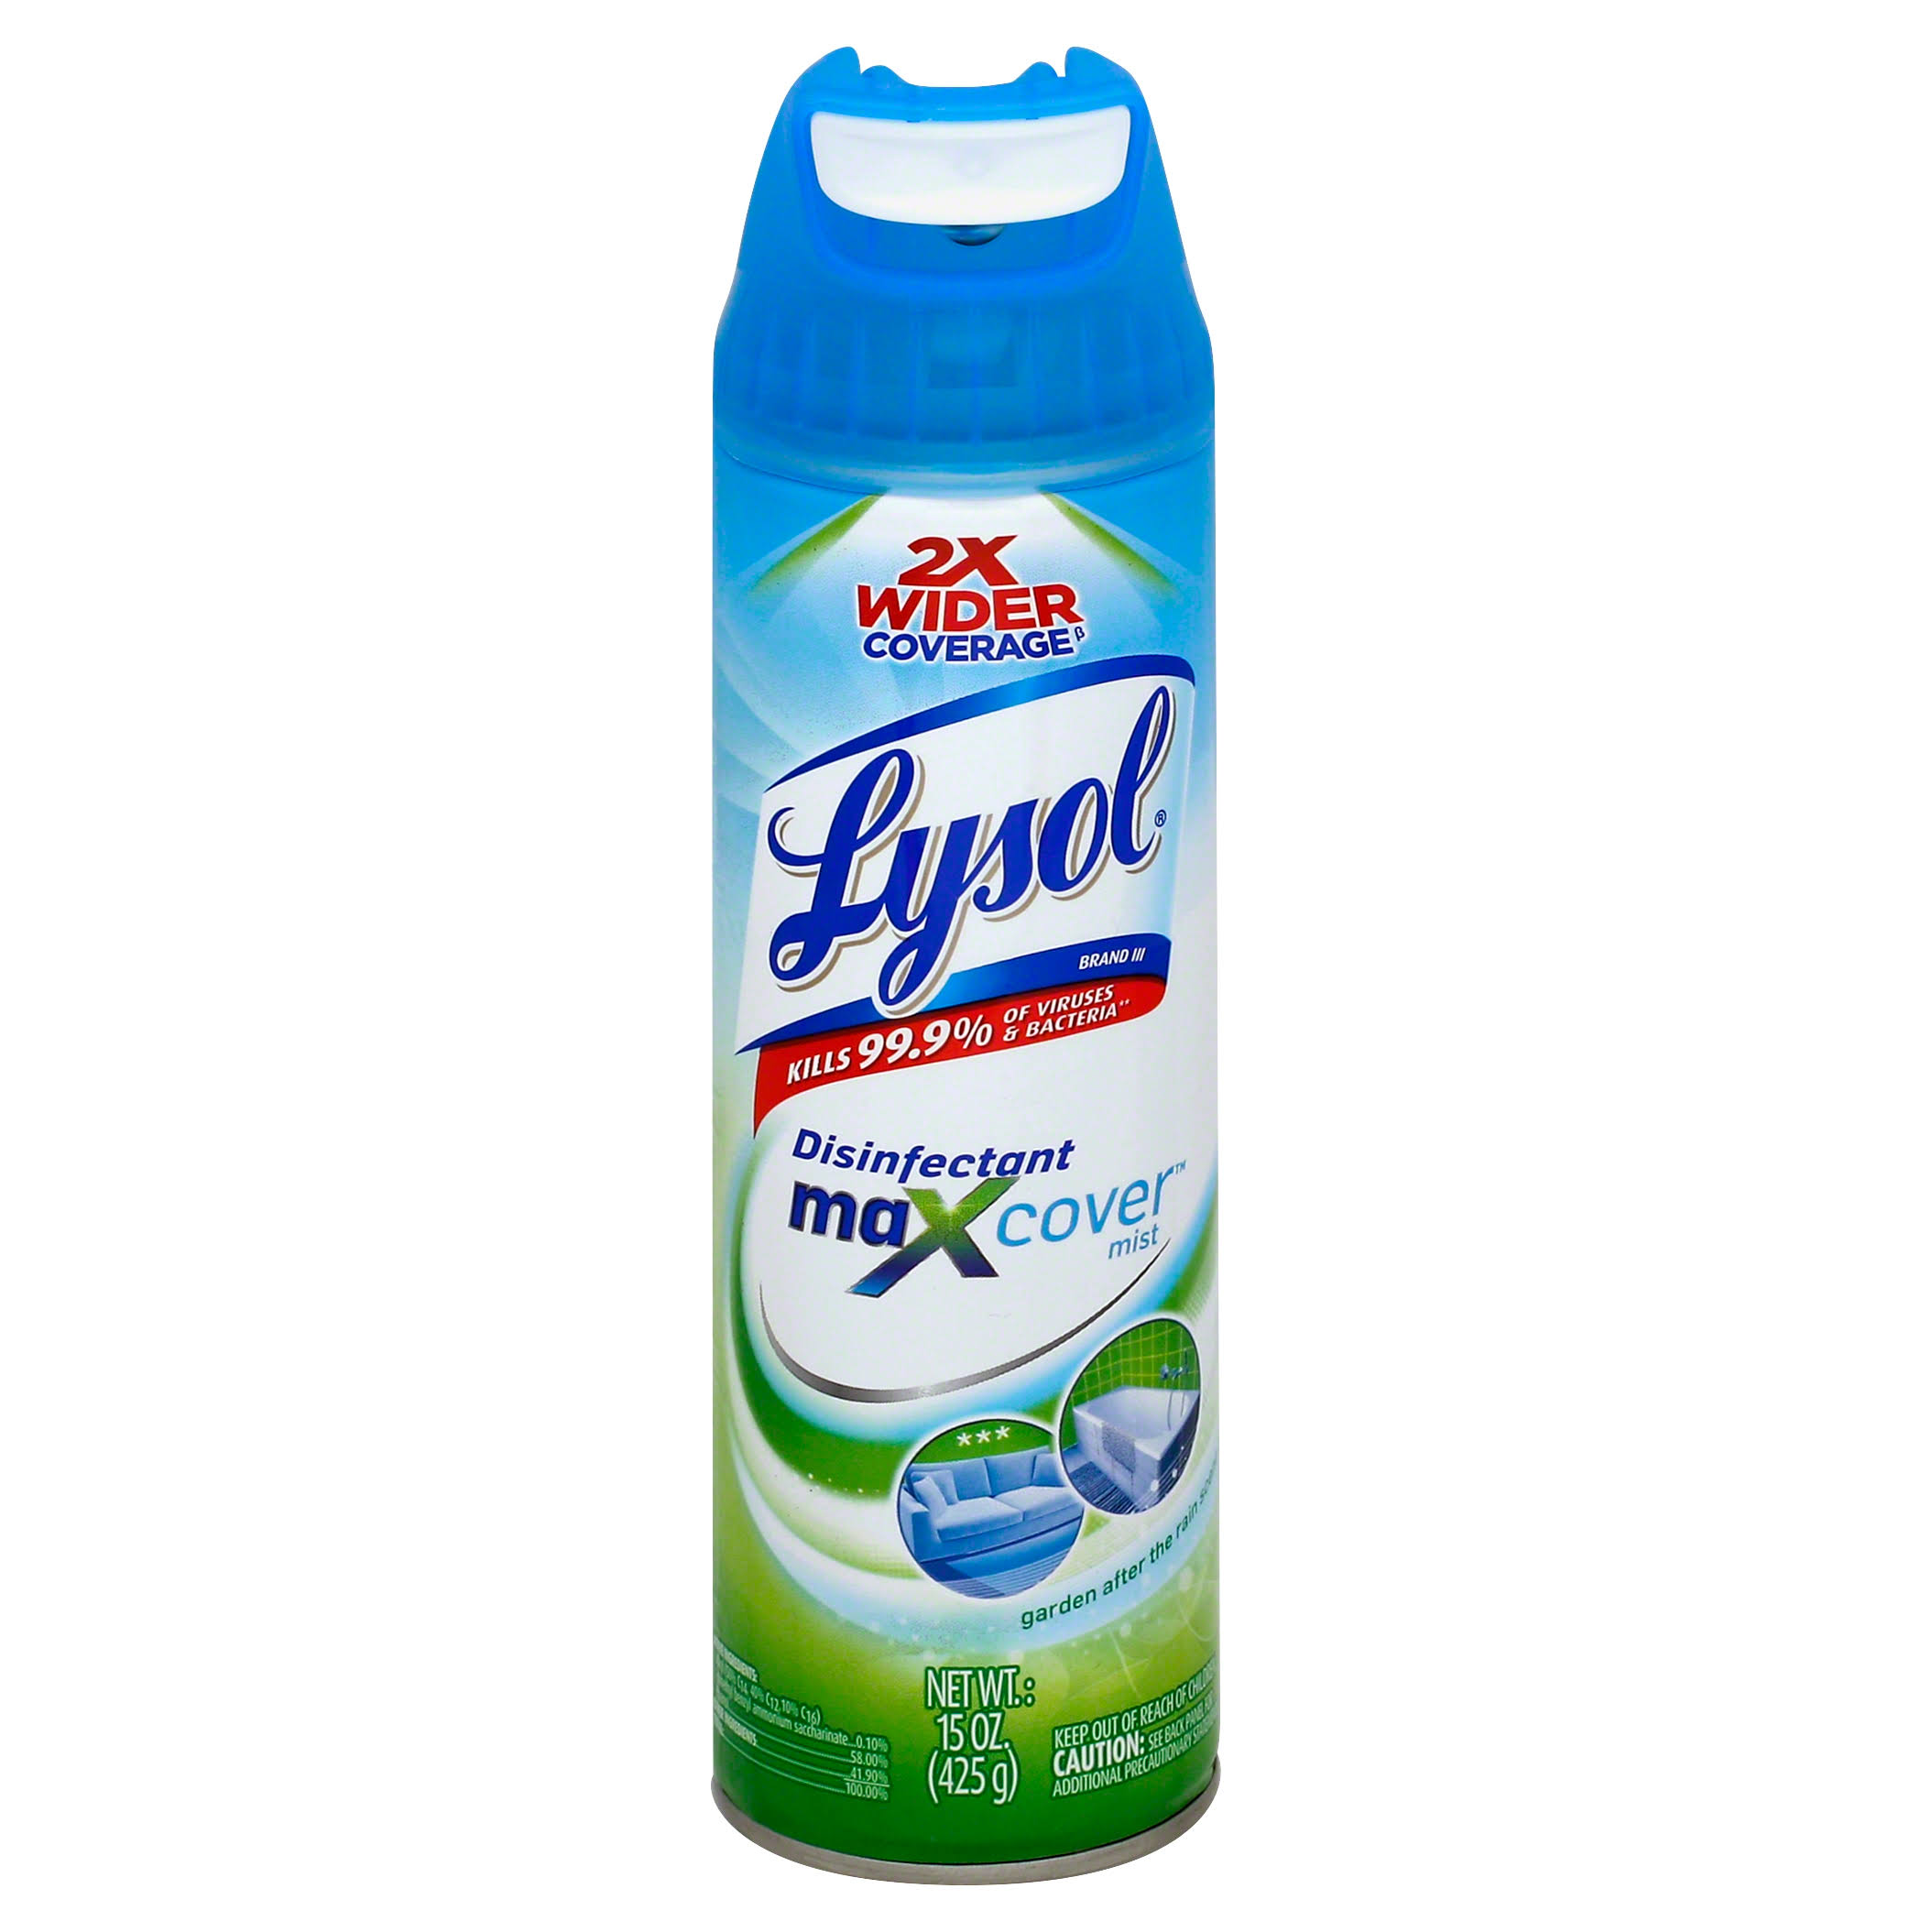 Lysol Garden After the Rain Maxcover Disinfectant - 15oz